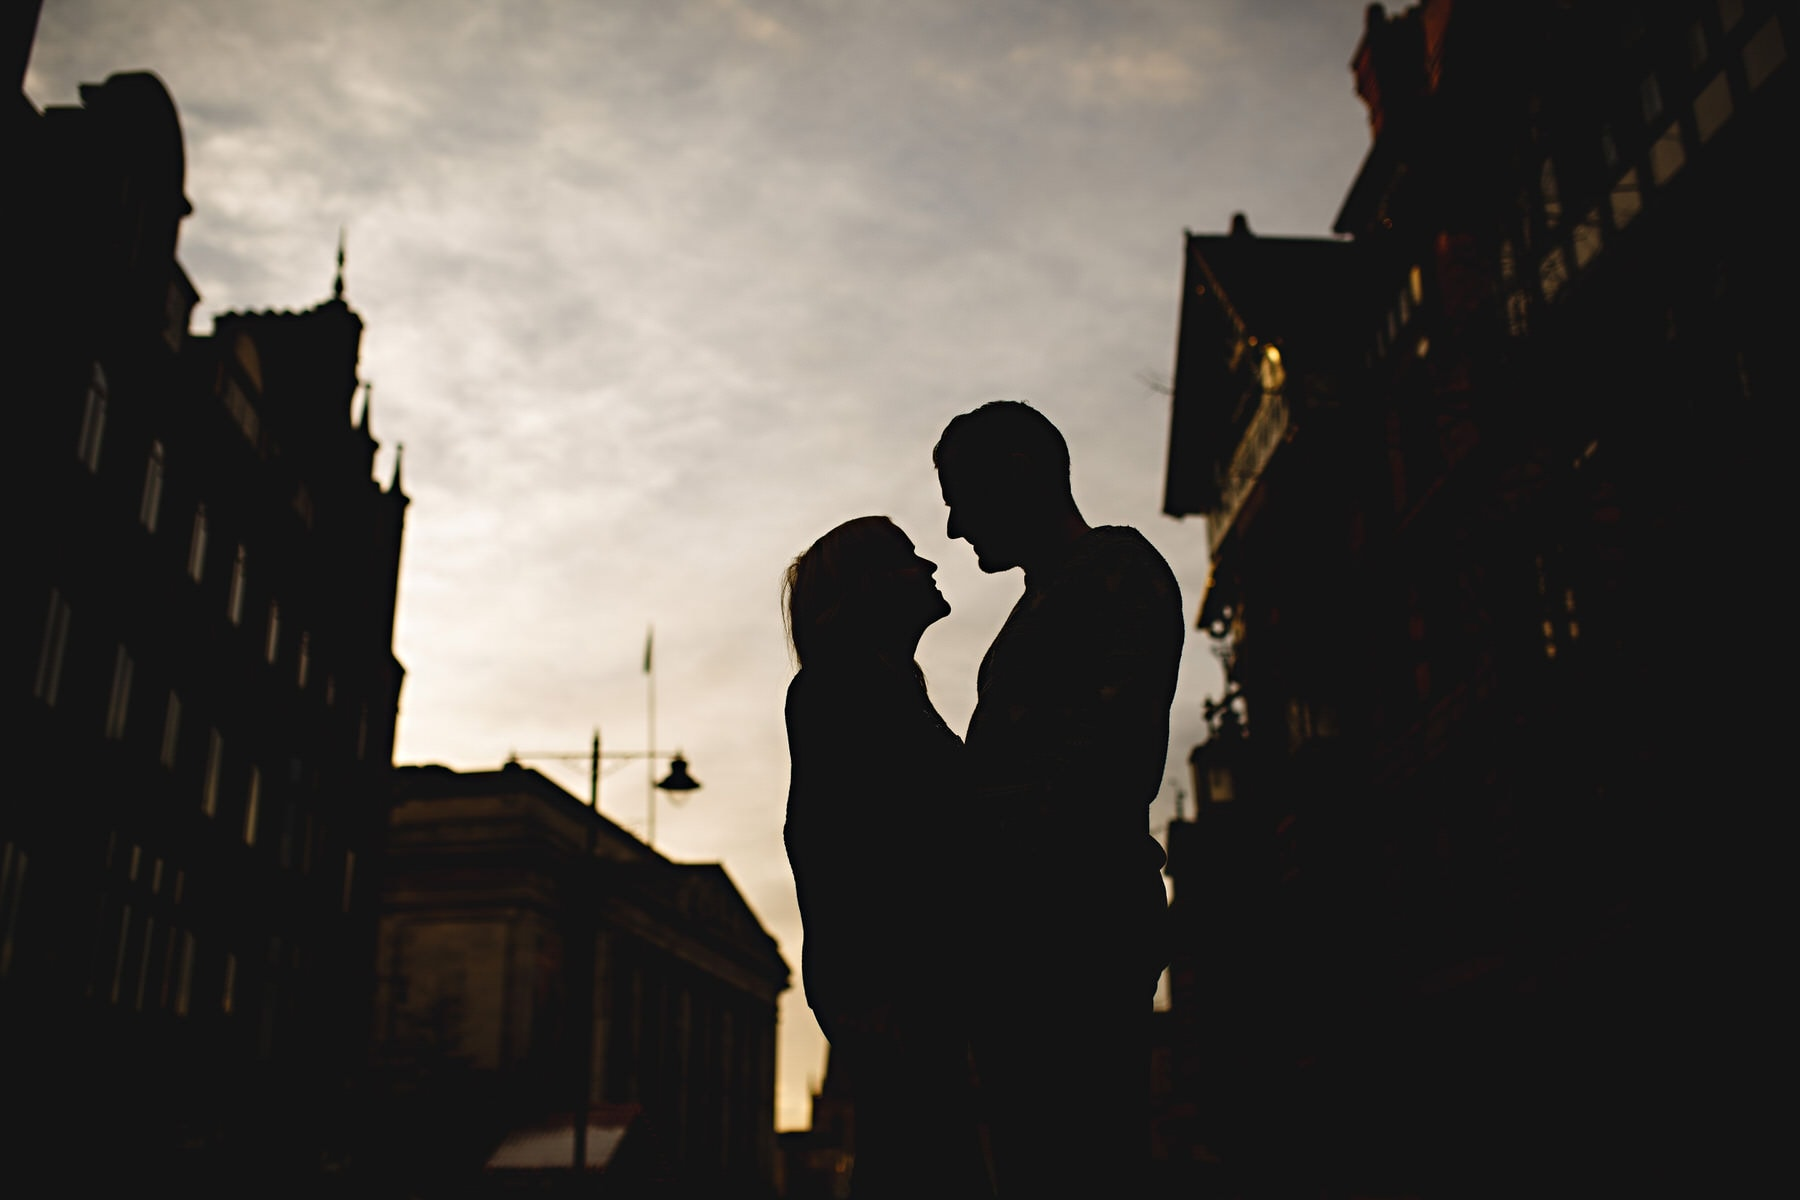 A silhouette of a couple togehter in the city